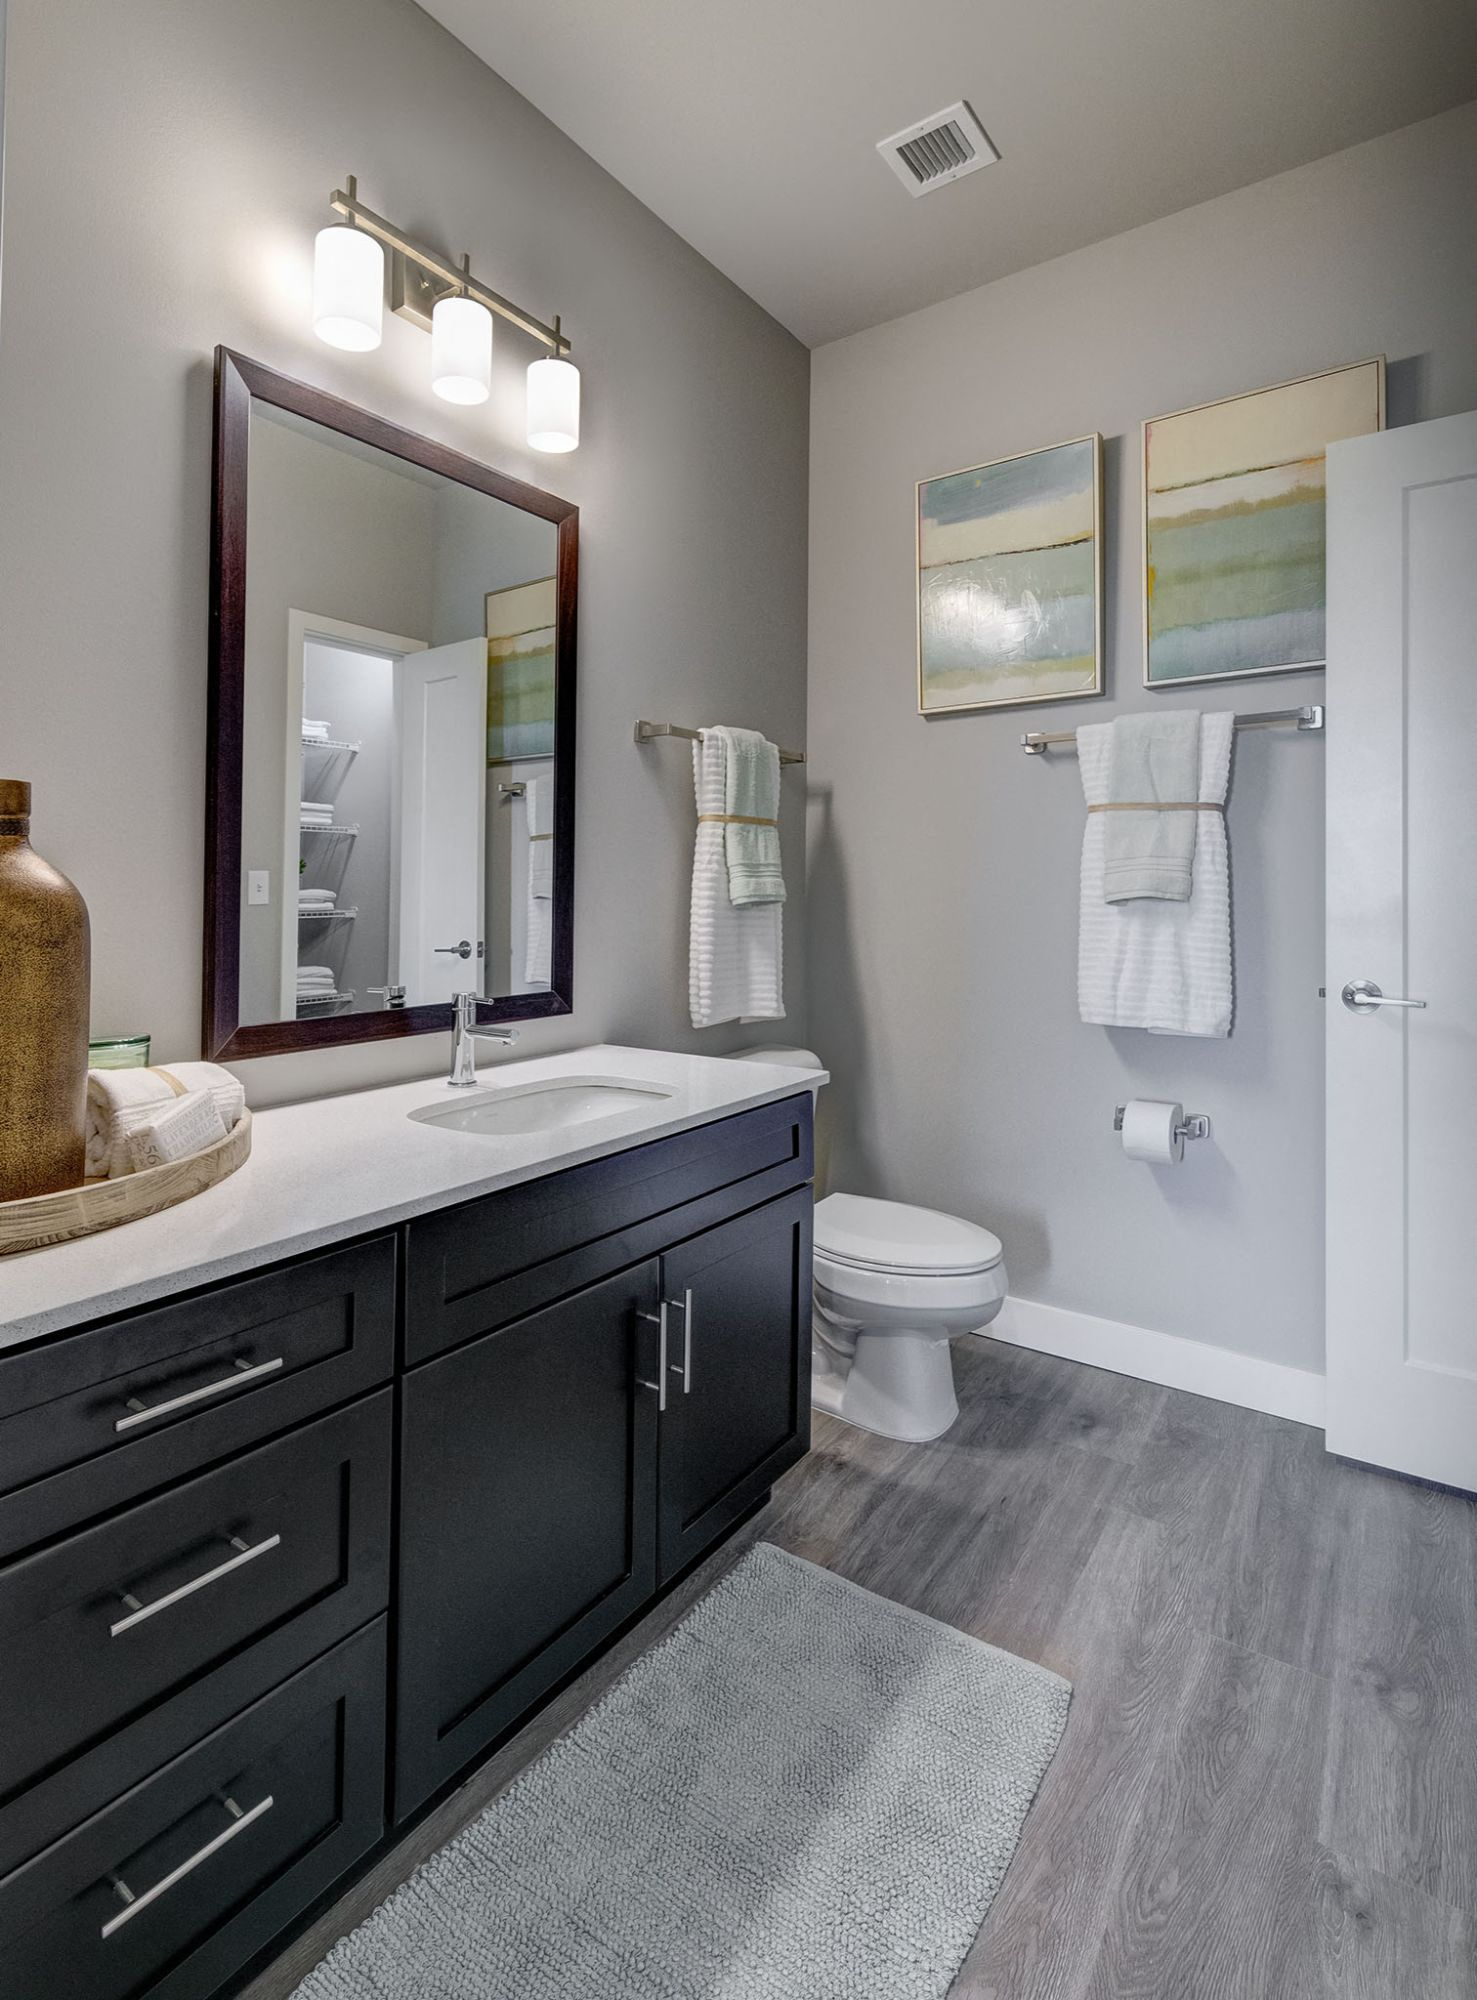 Bathroom counter with toilet and tub shower combination